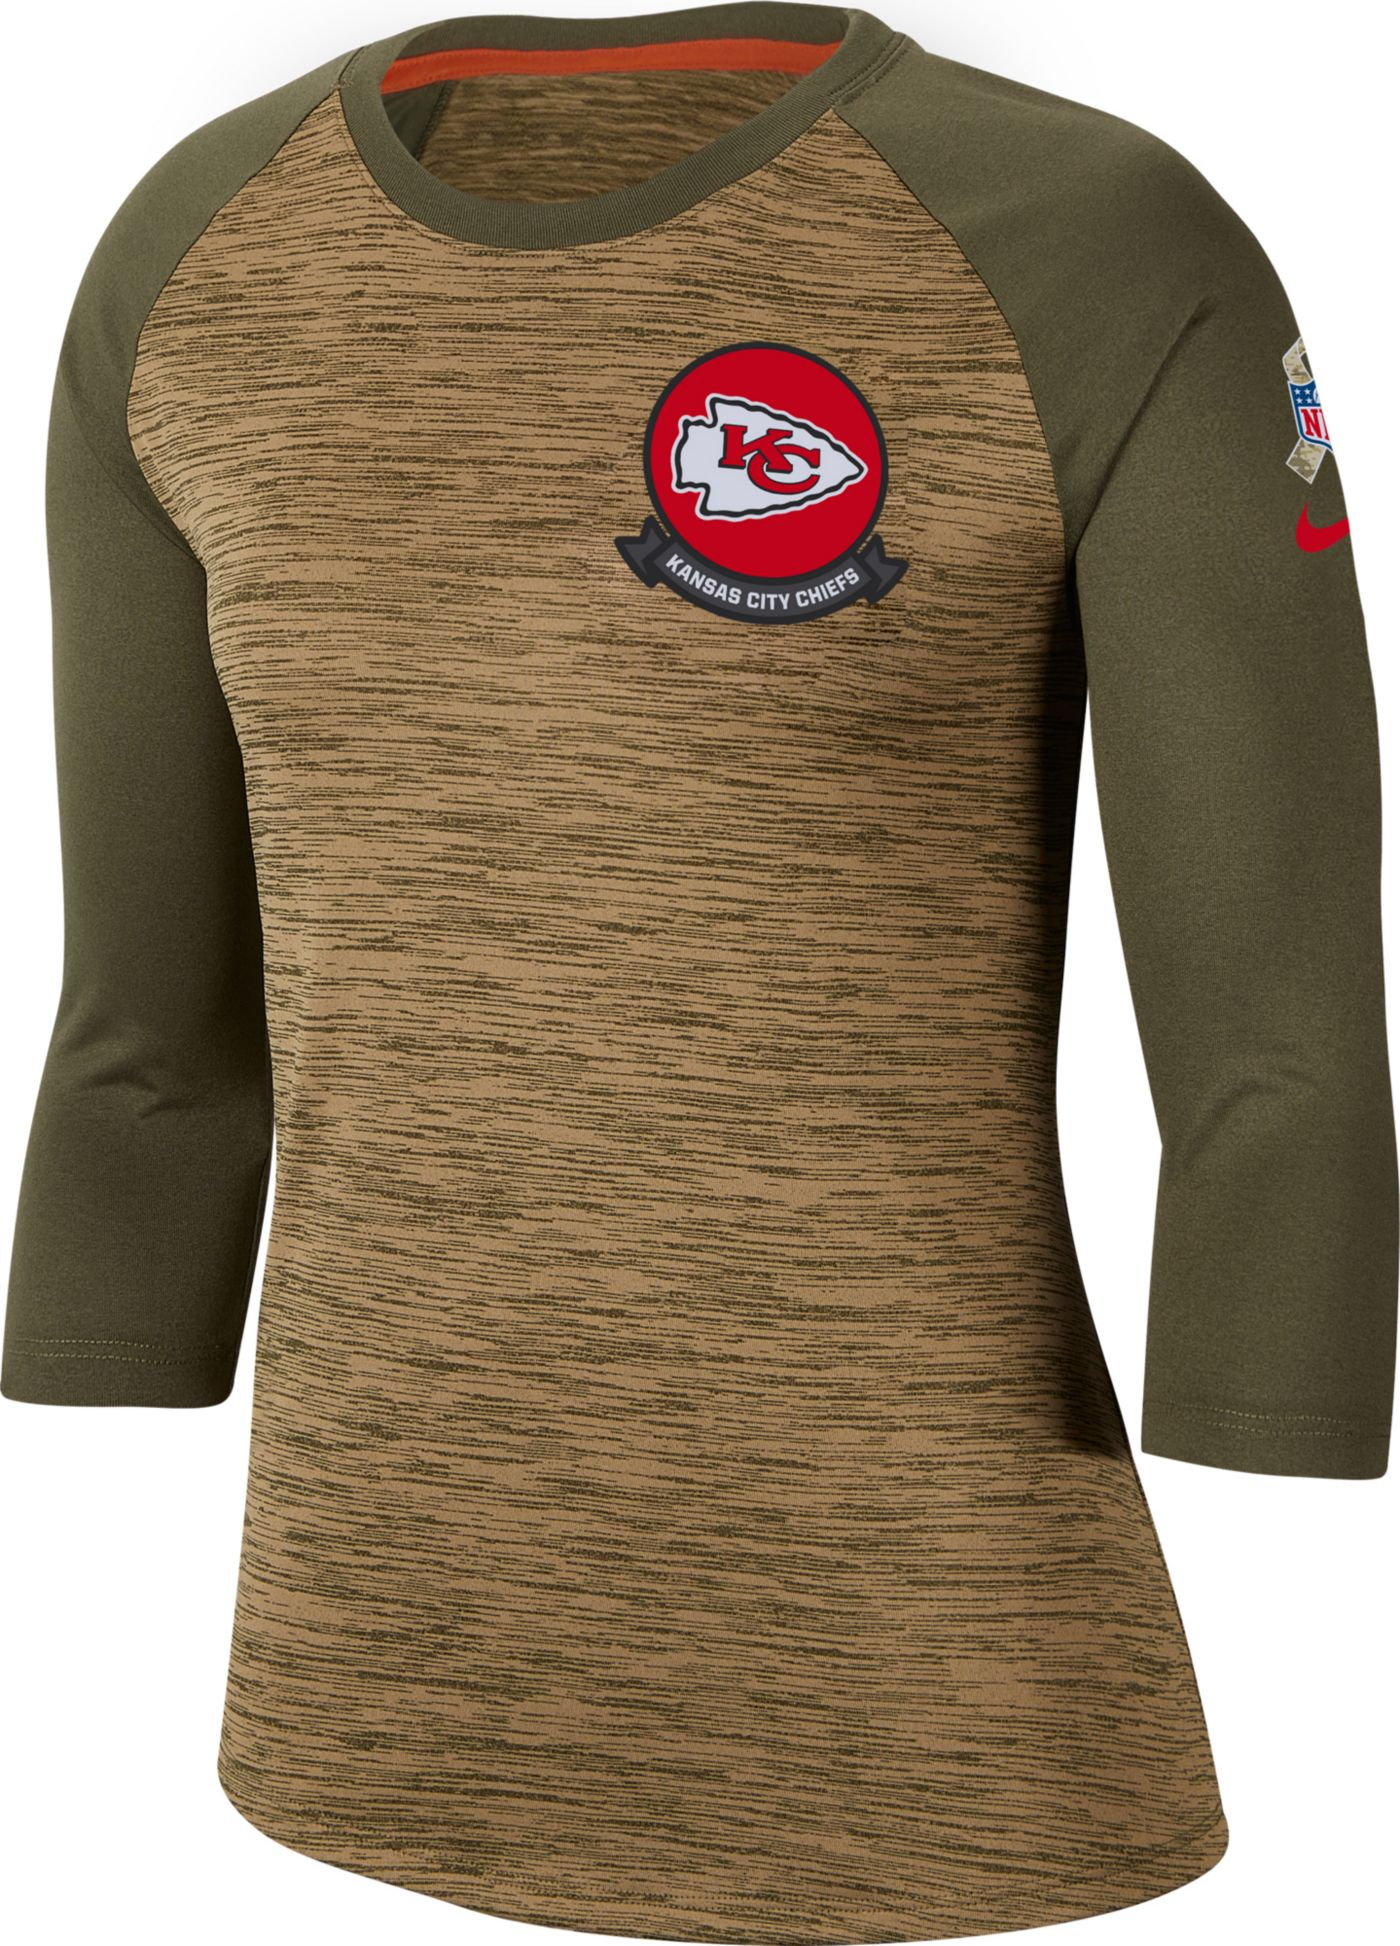 Nike Women's Salute to Service Kansas City Chiefs Dri-FIT Beige Raglan Shirt